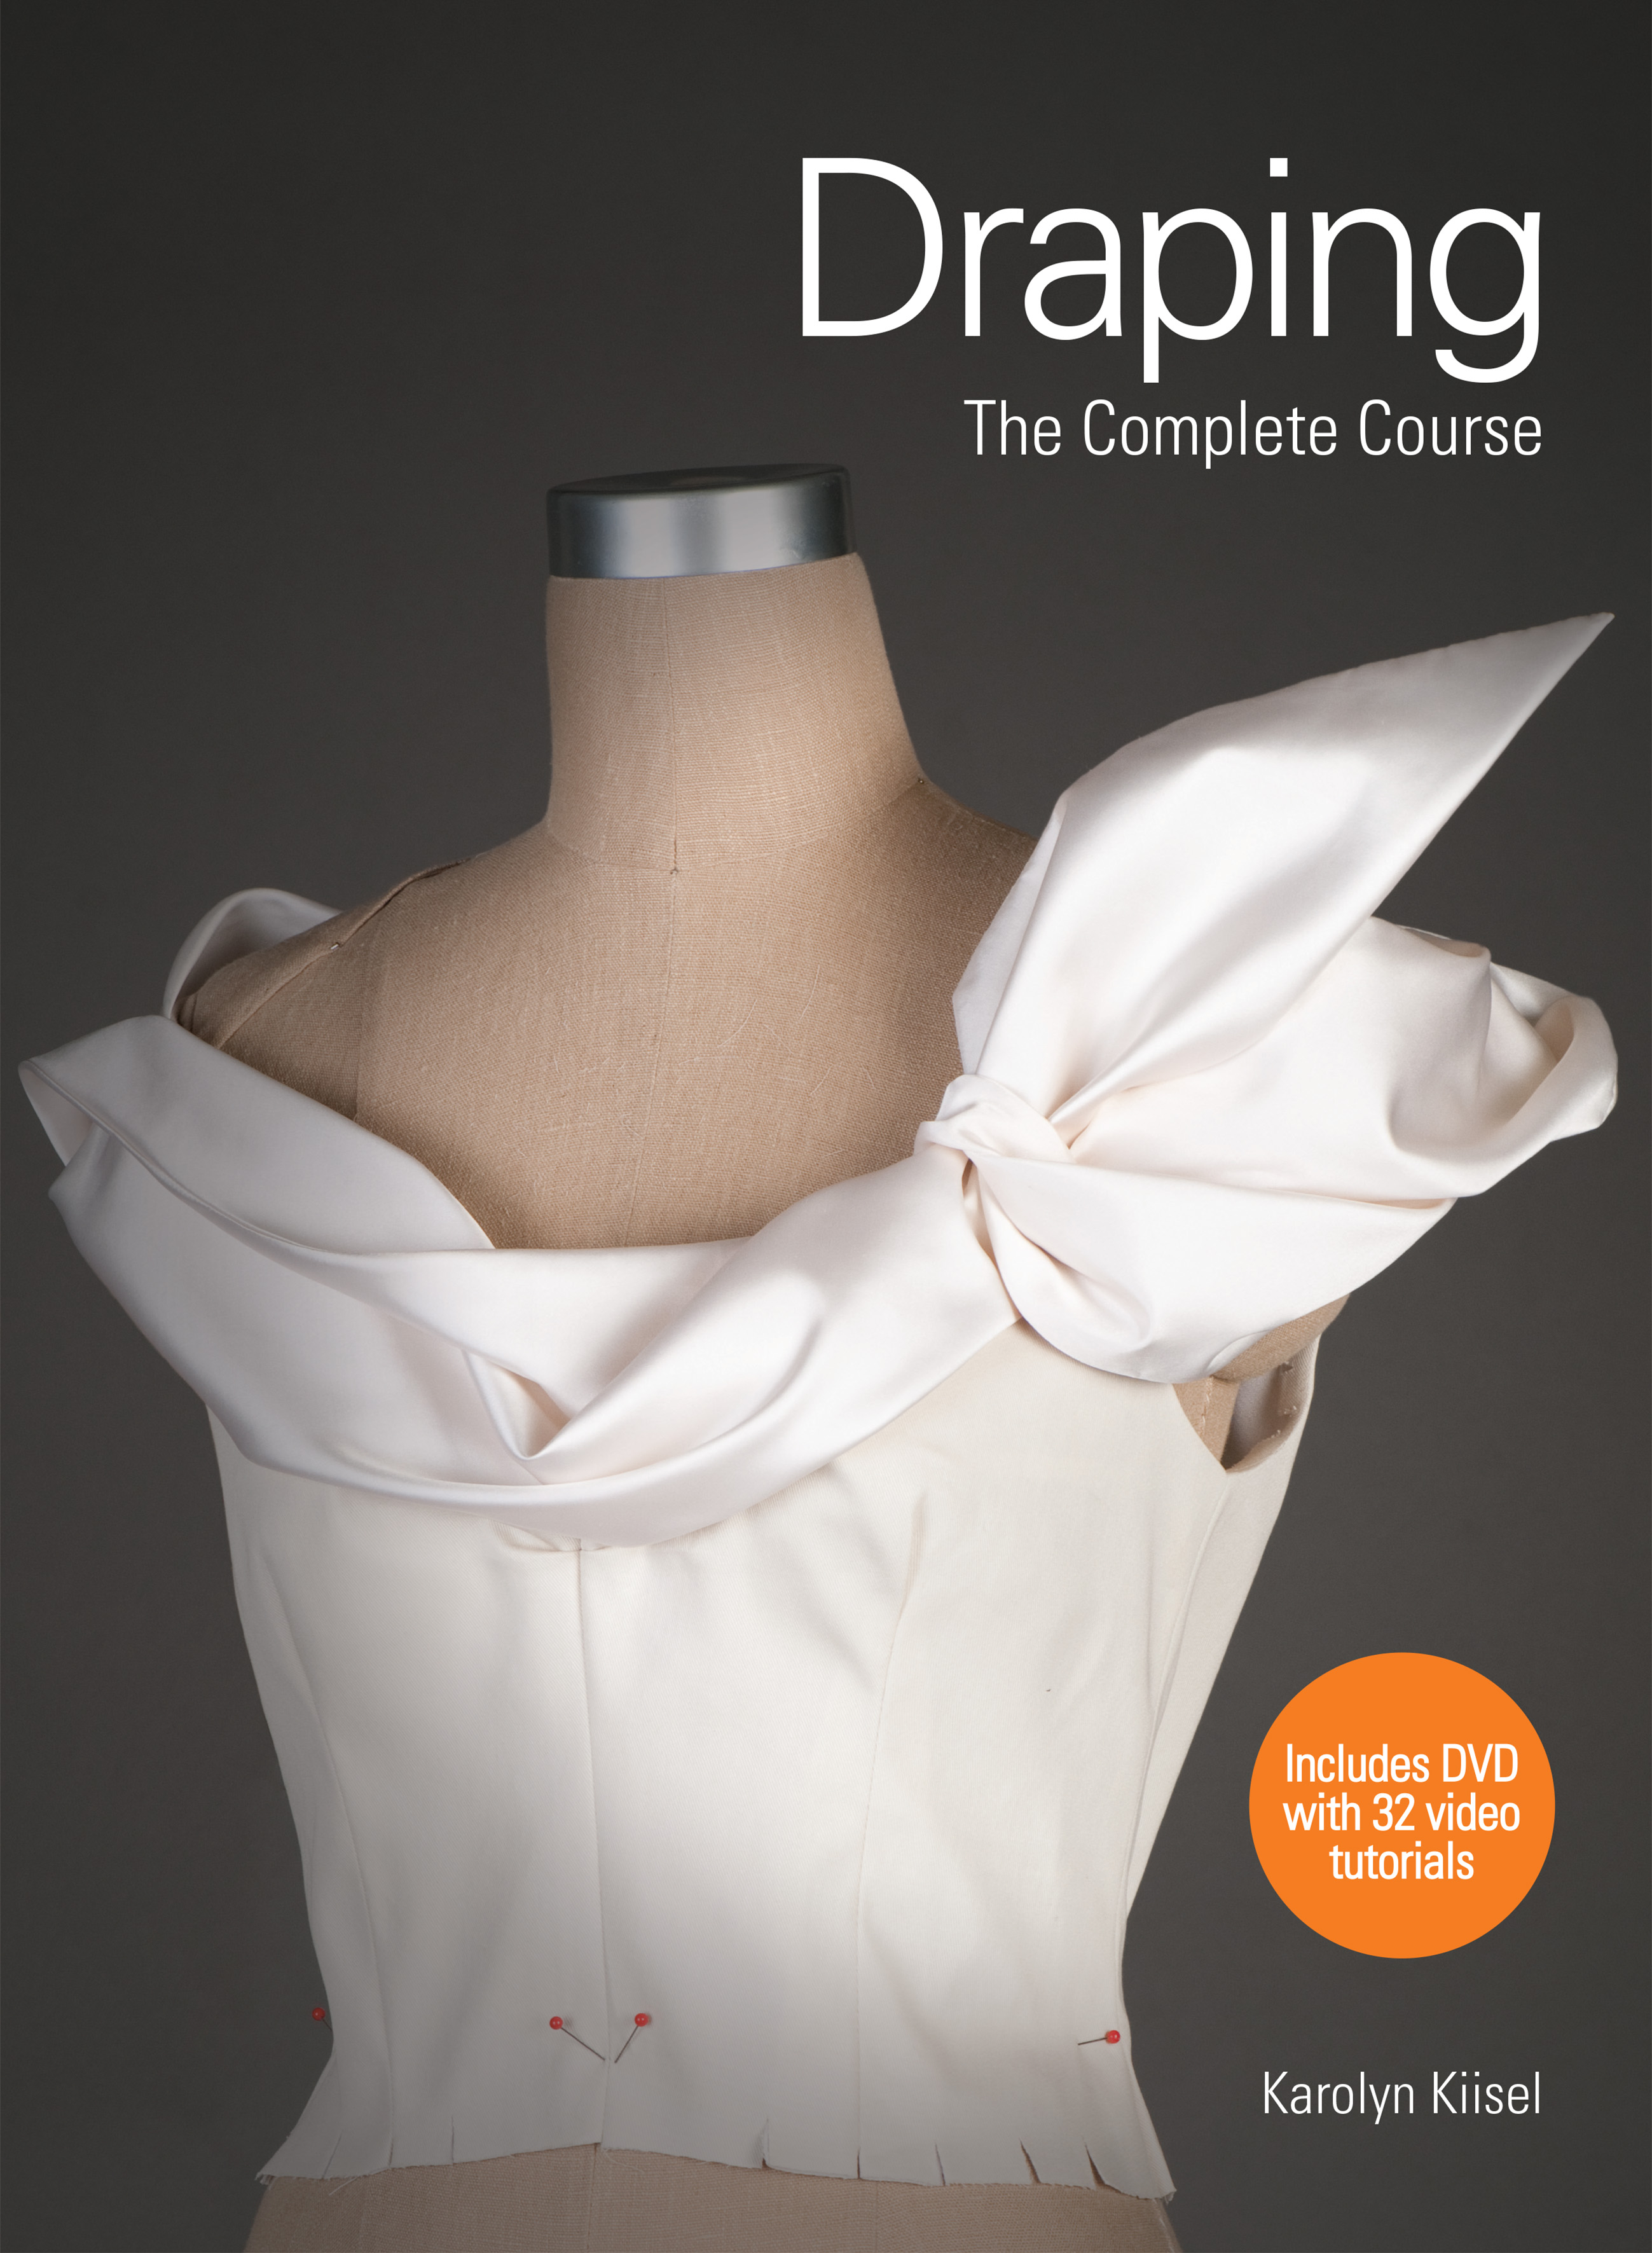 a design draping images bodice block the drapes basic